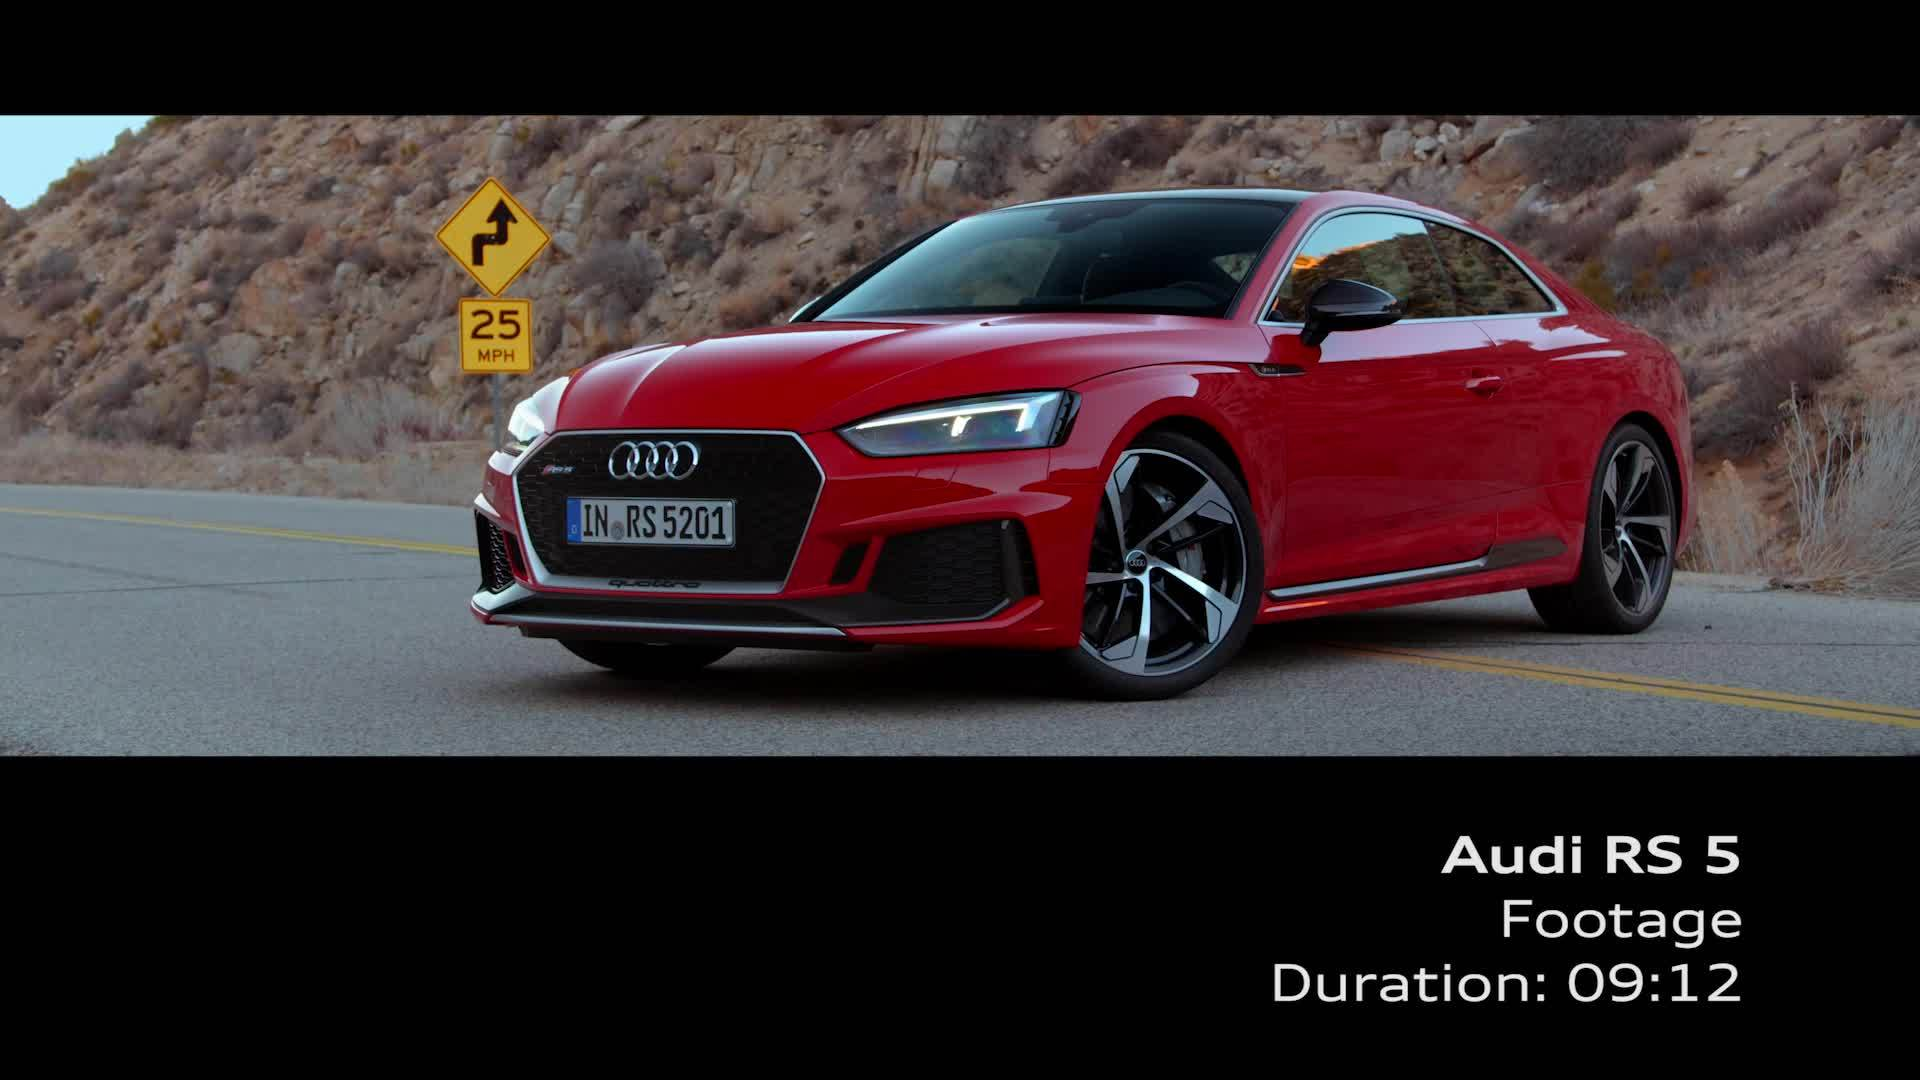 Audi RS 5 Coupé - Footage